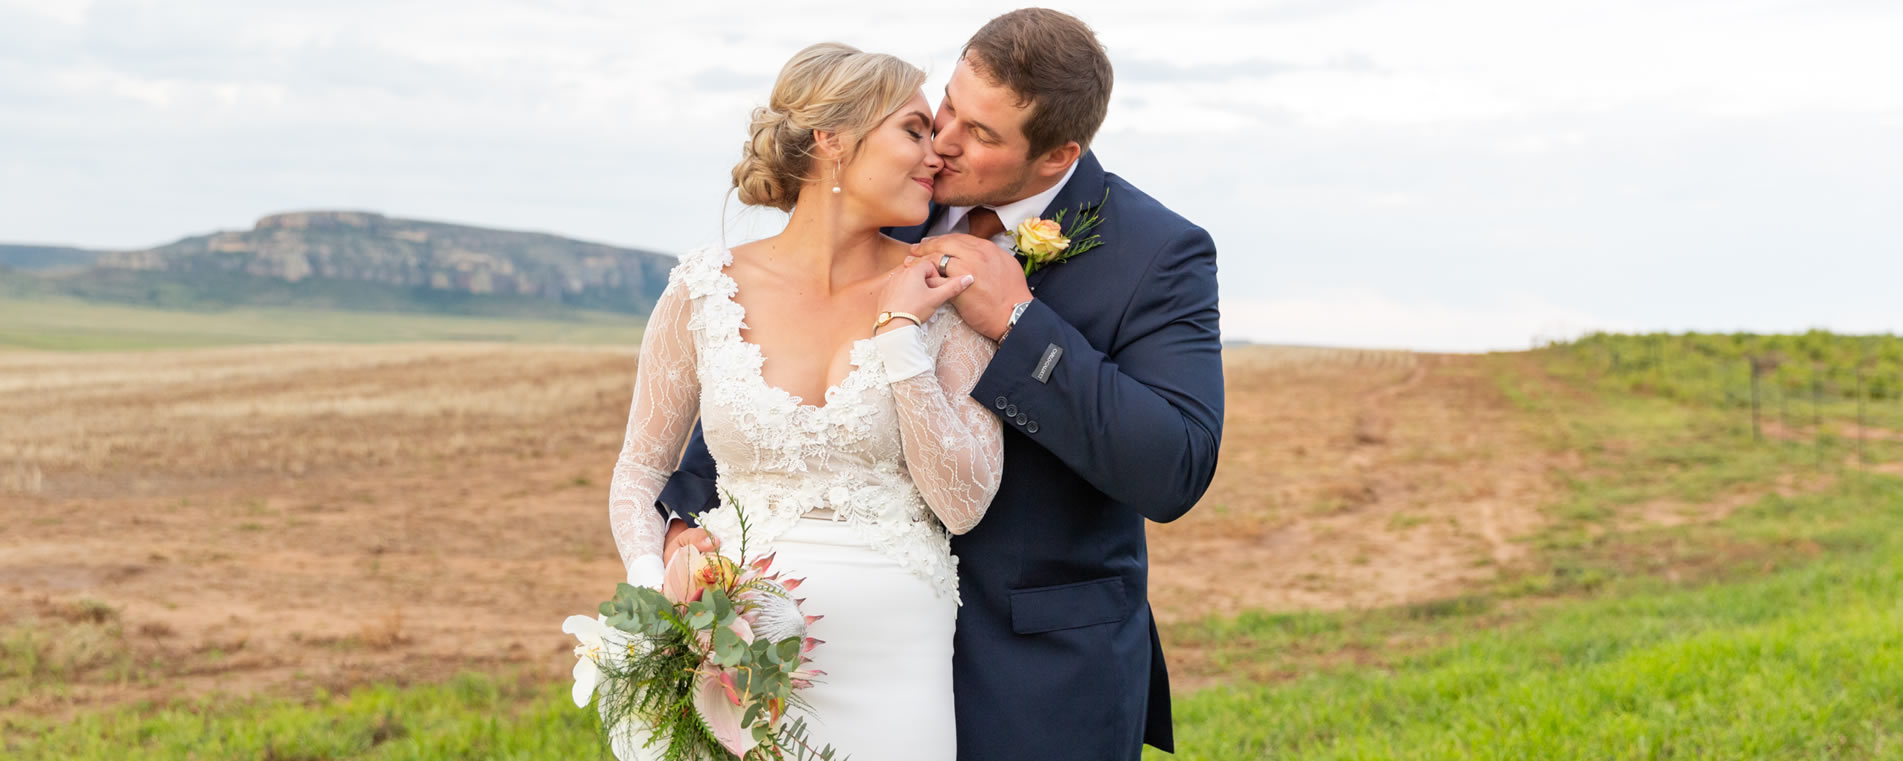 Wedding Photography Packages Bloemfontein